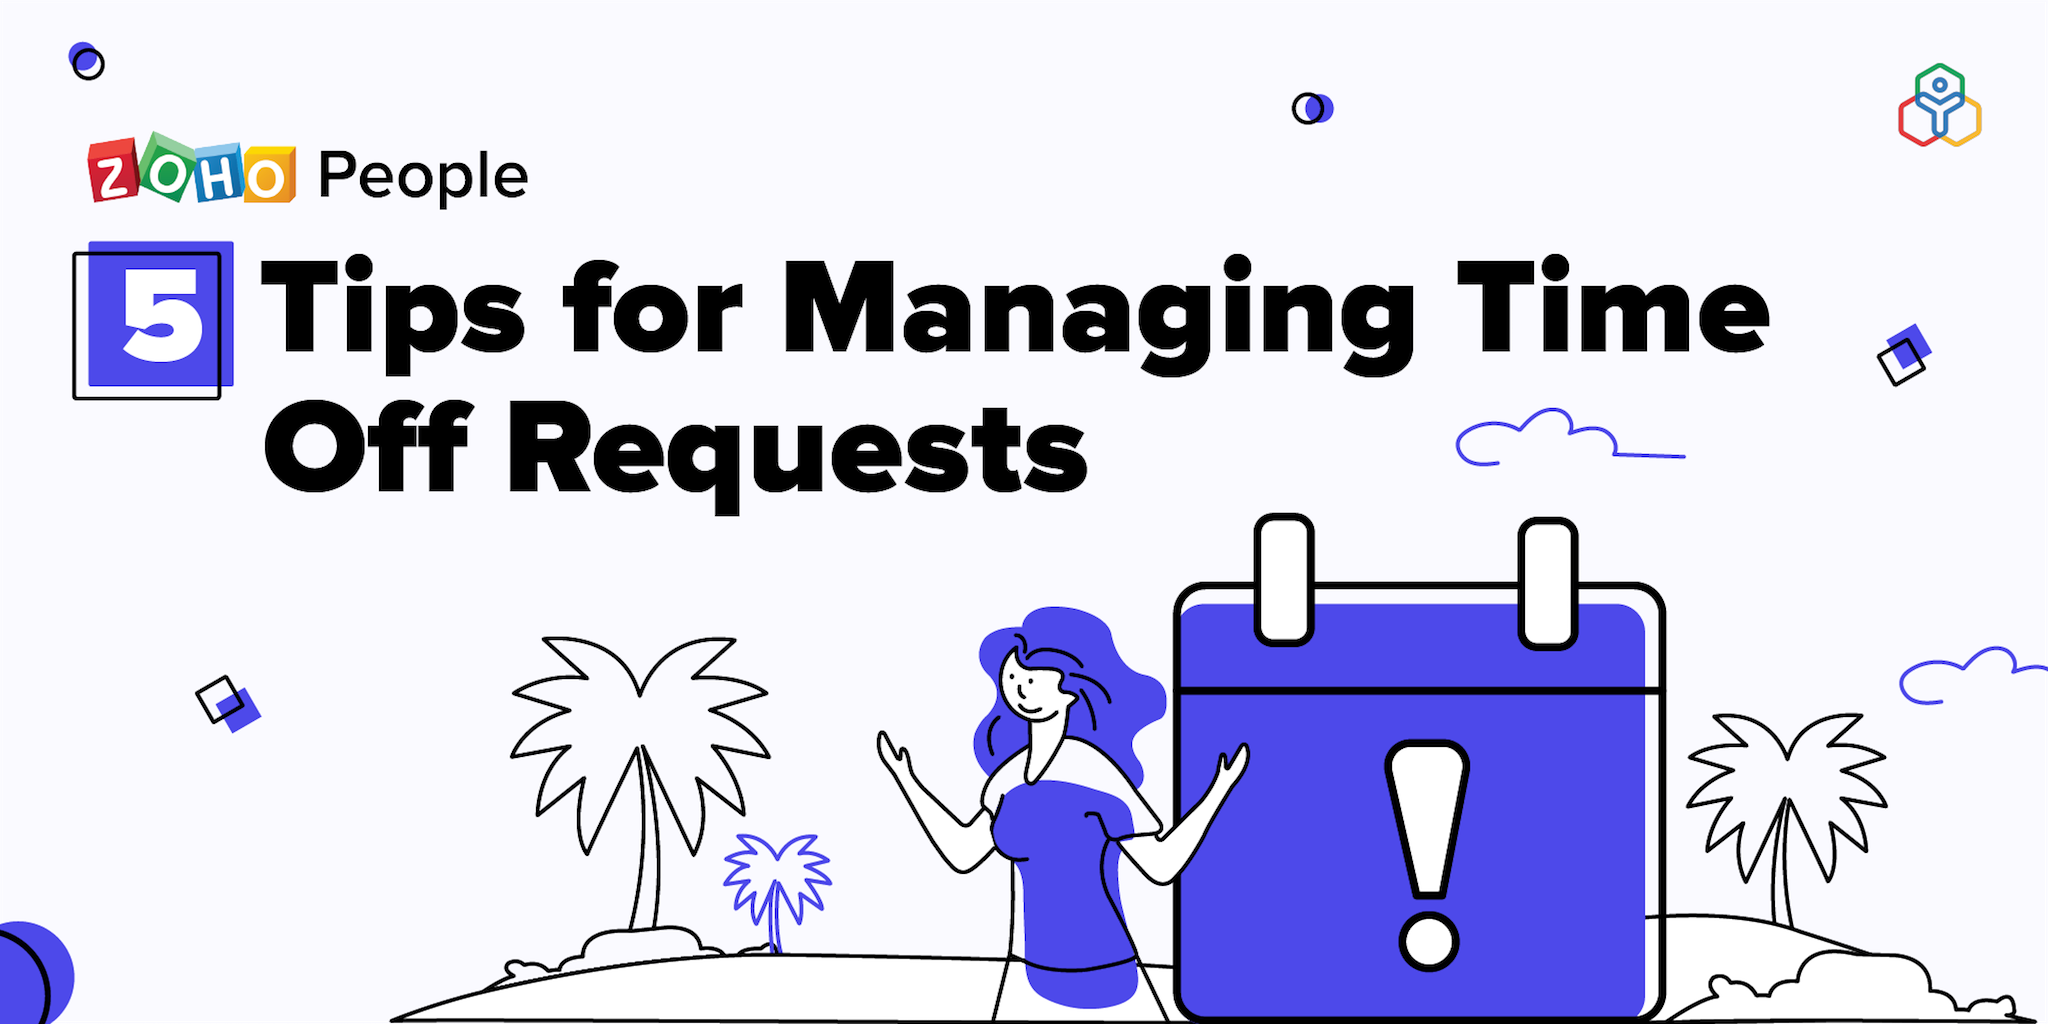 How to manage employee time off requests effectively